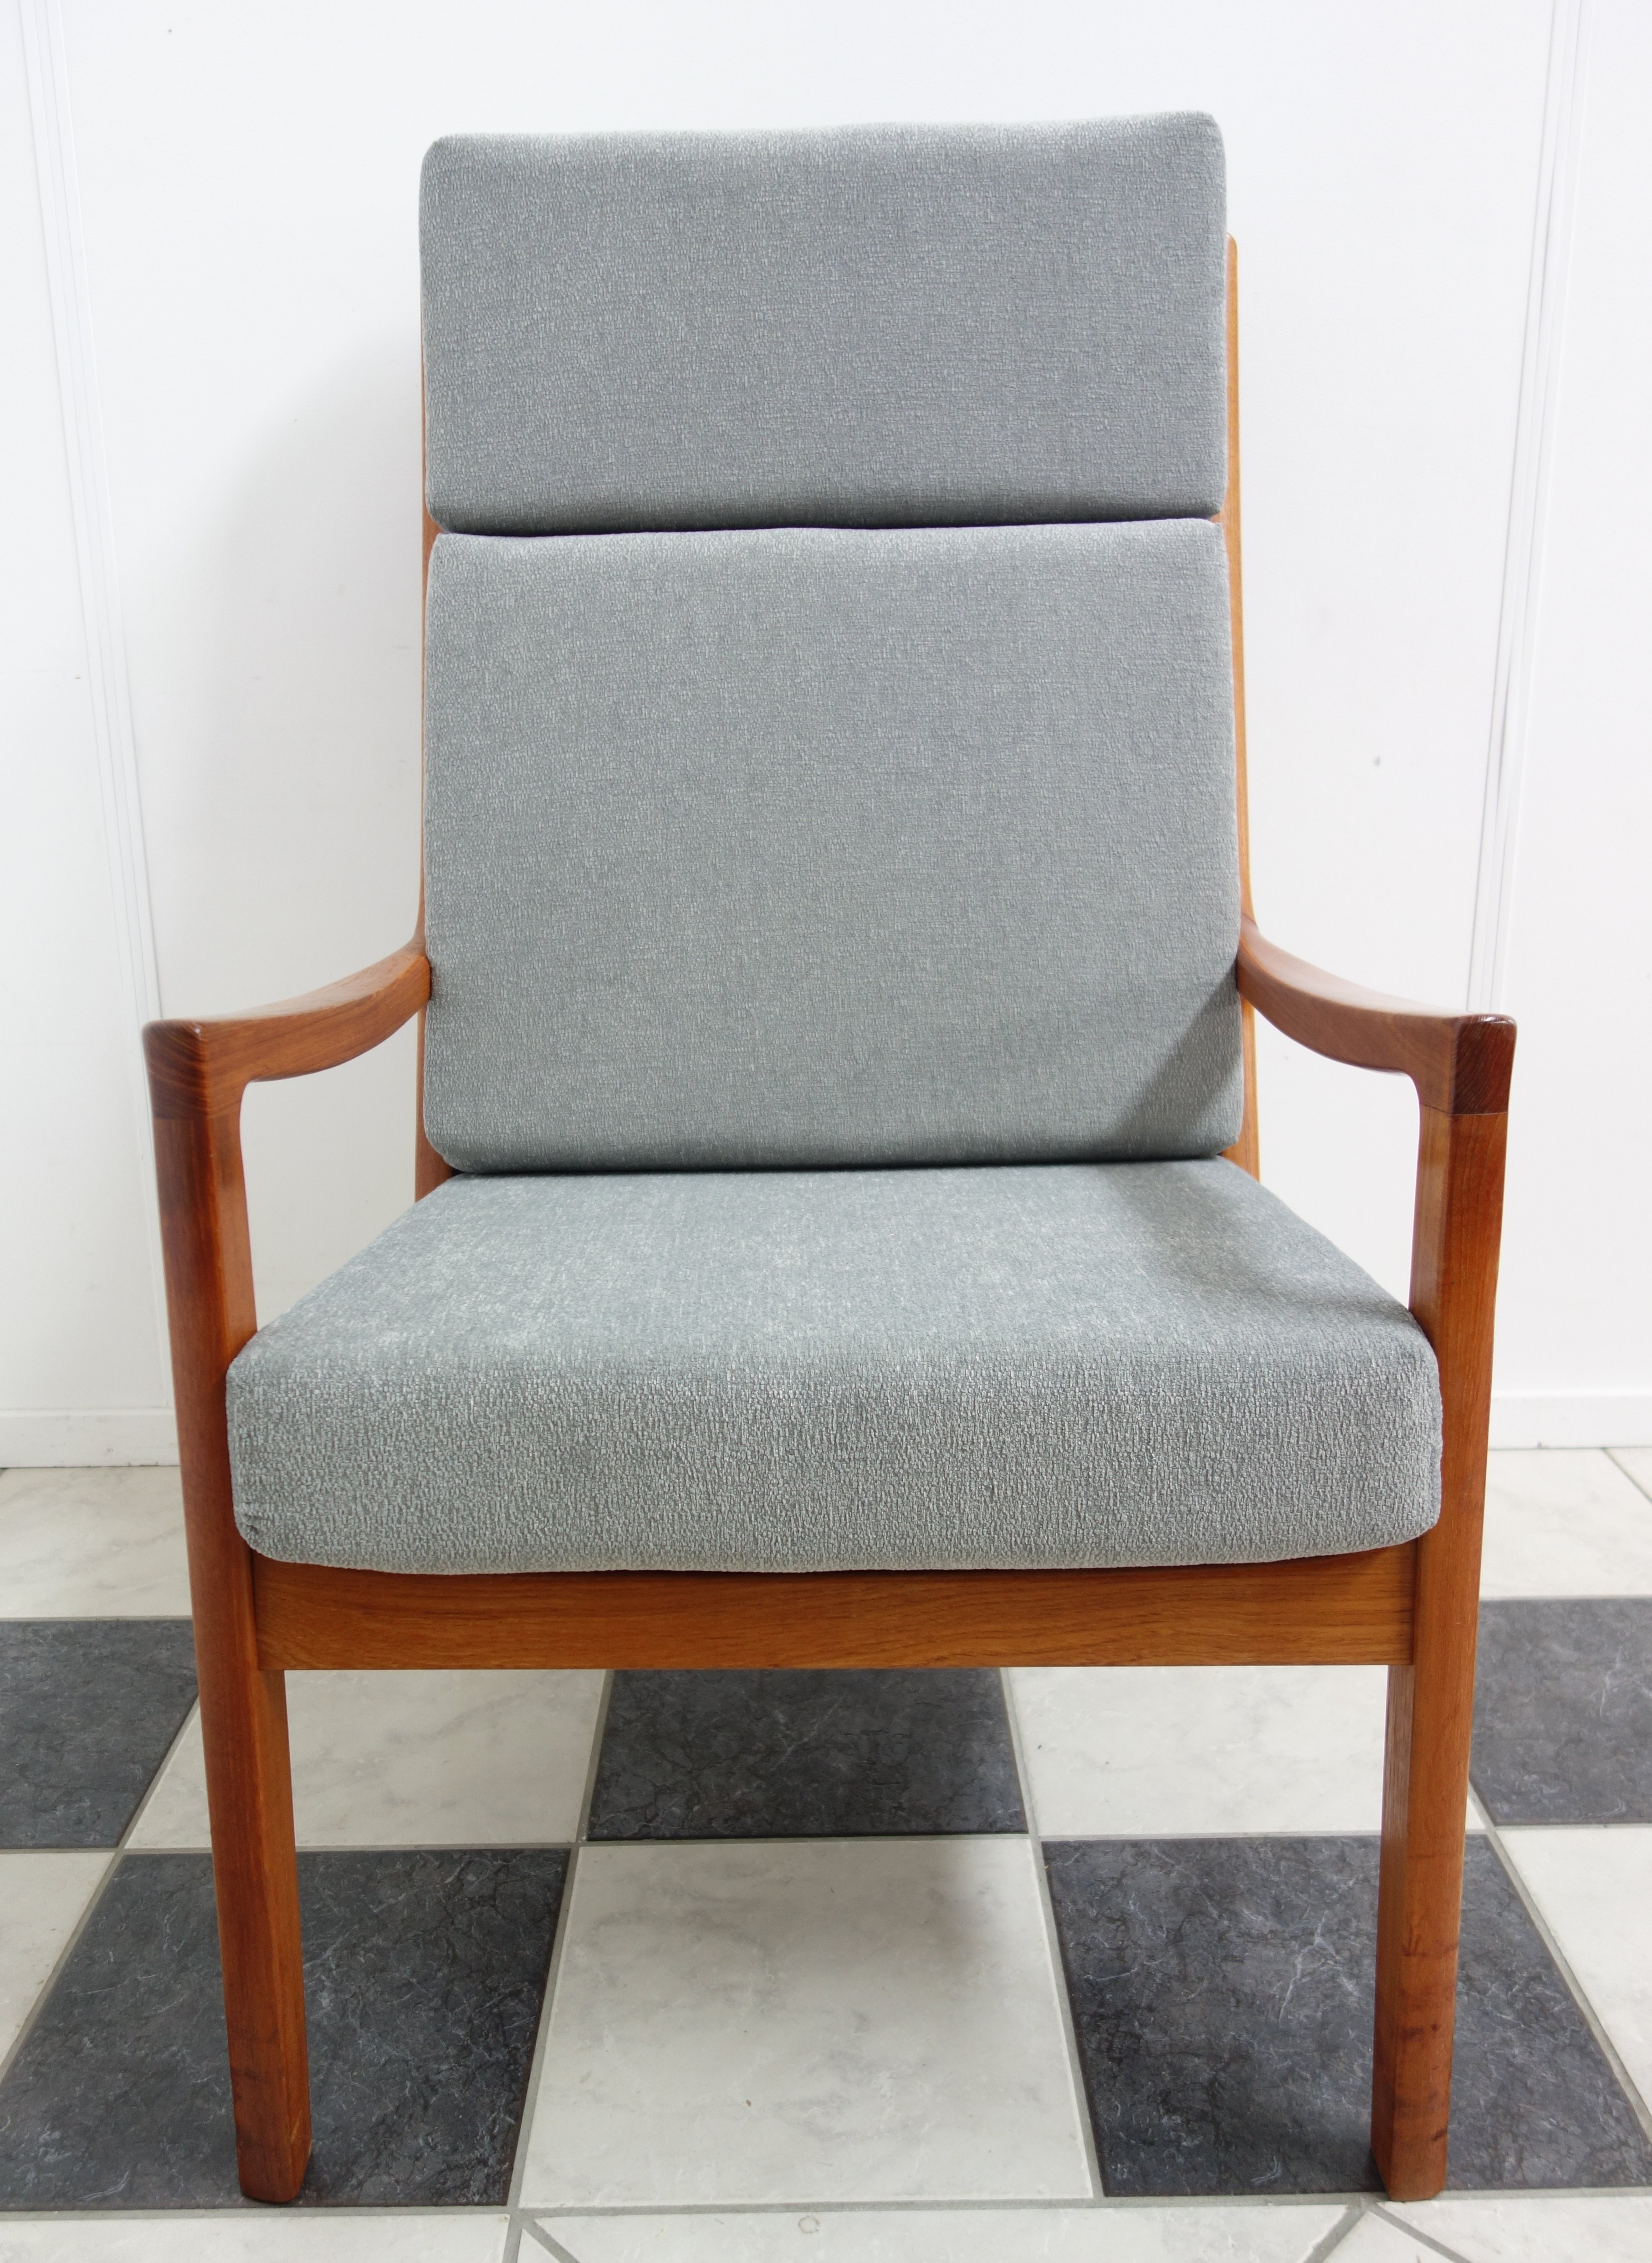 Tremendous Senator Arm Chair By Ole Wanscher For P Jeppesen Mobelfabrik 1960S Gmtry Best Dining Table And Chair Ideas Images Gmtryco